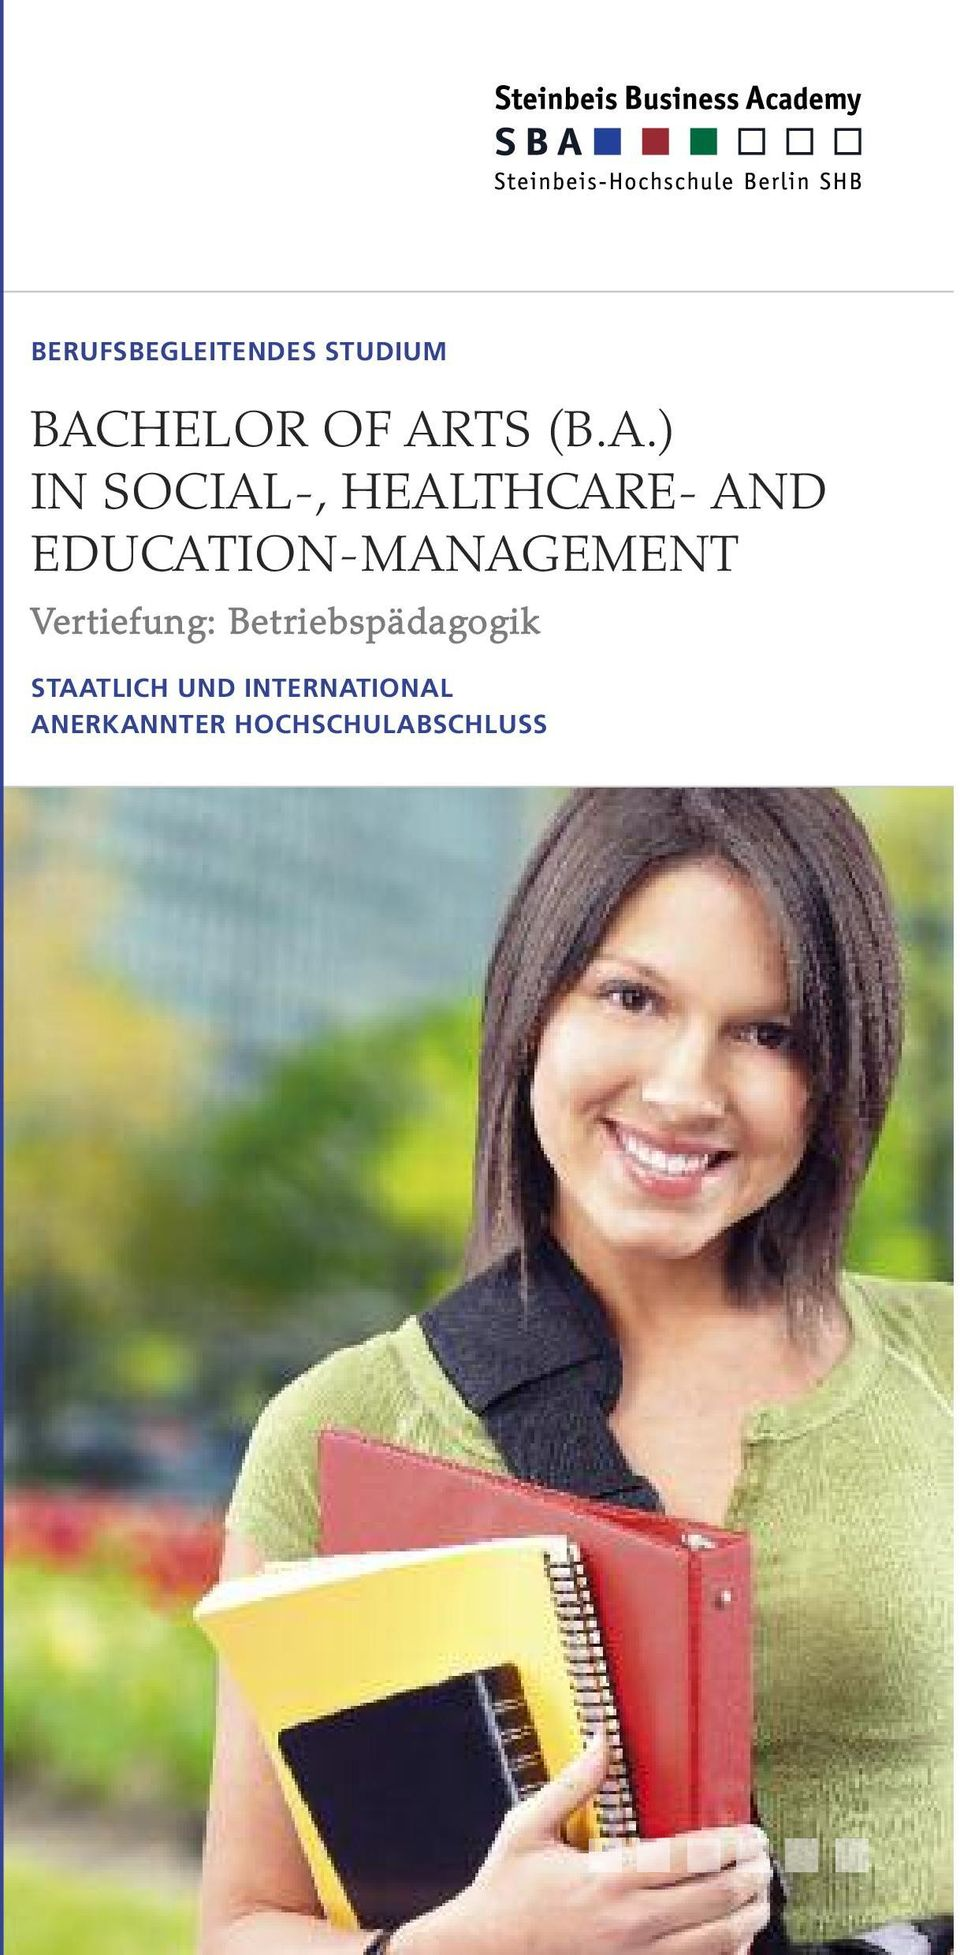 EDUCATION-MANAGEMENT Vertiefung: